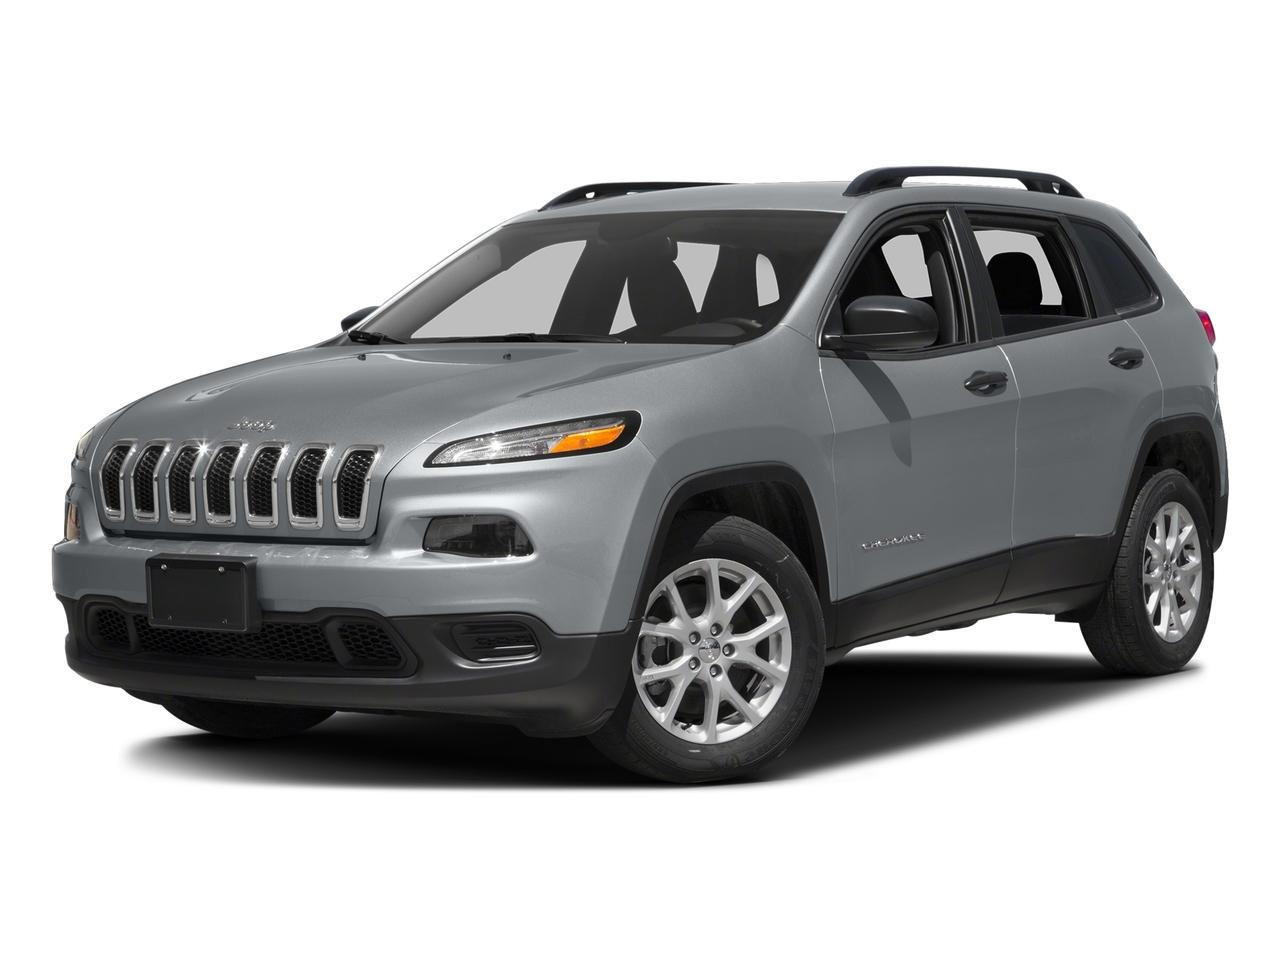 2016 Jeep Cherokee Vehicle Photo in Melbourne, FL 32901